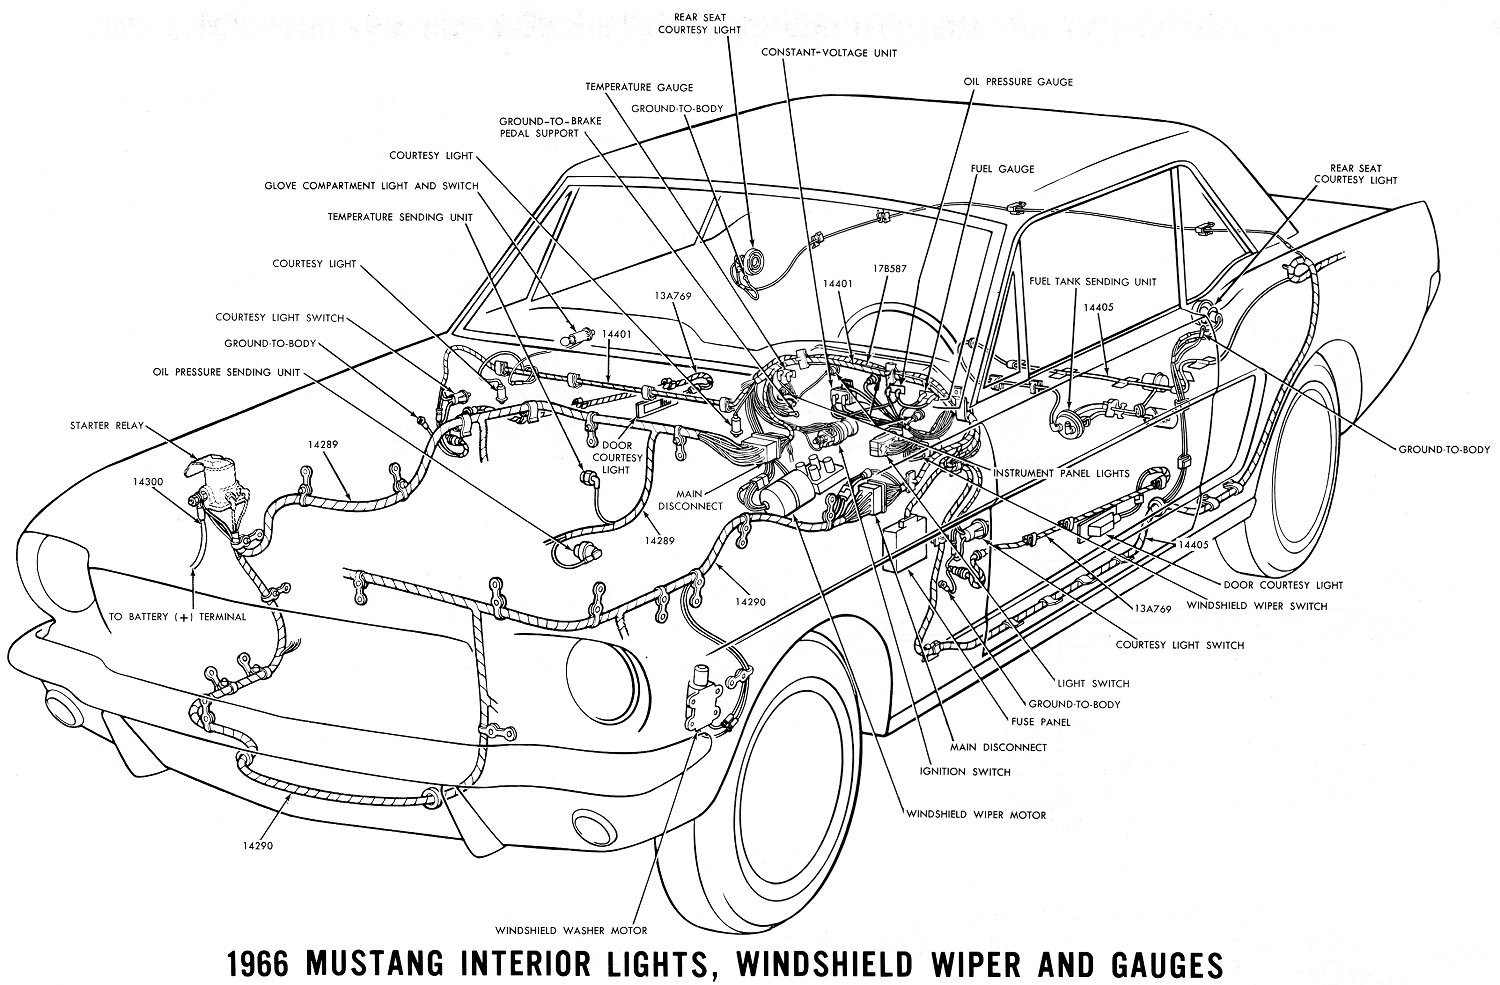 hight resolution of 1966 mustang wiring diagrams average joe restoration rh averagejoerestoration com 1965 mustang ignition switch wiring diagram